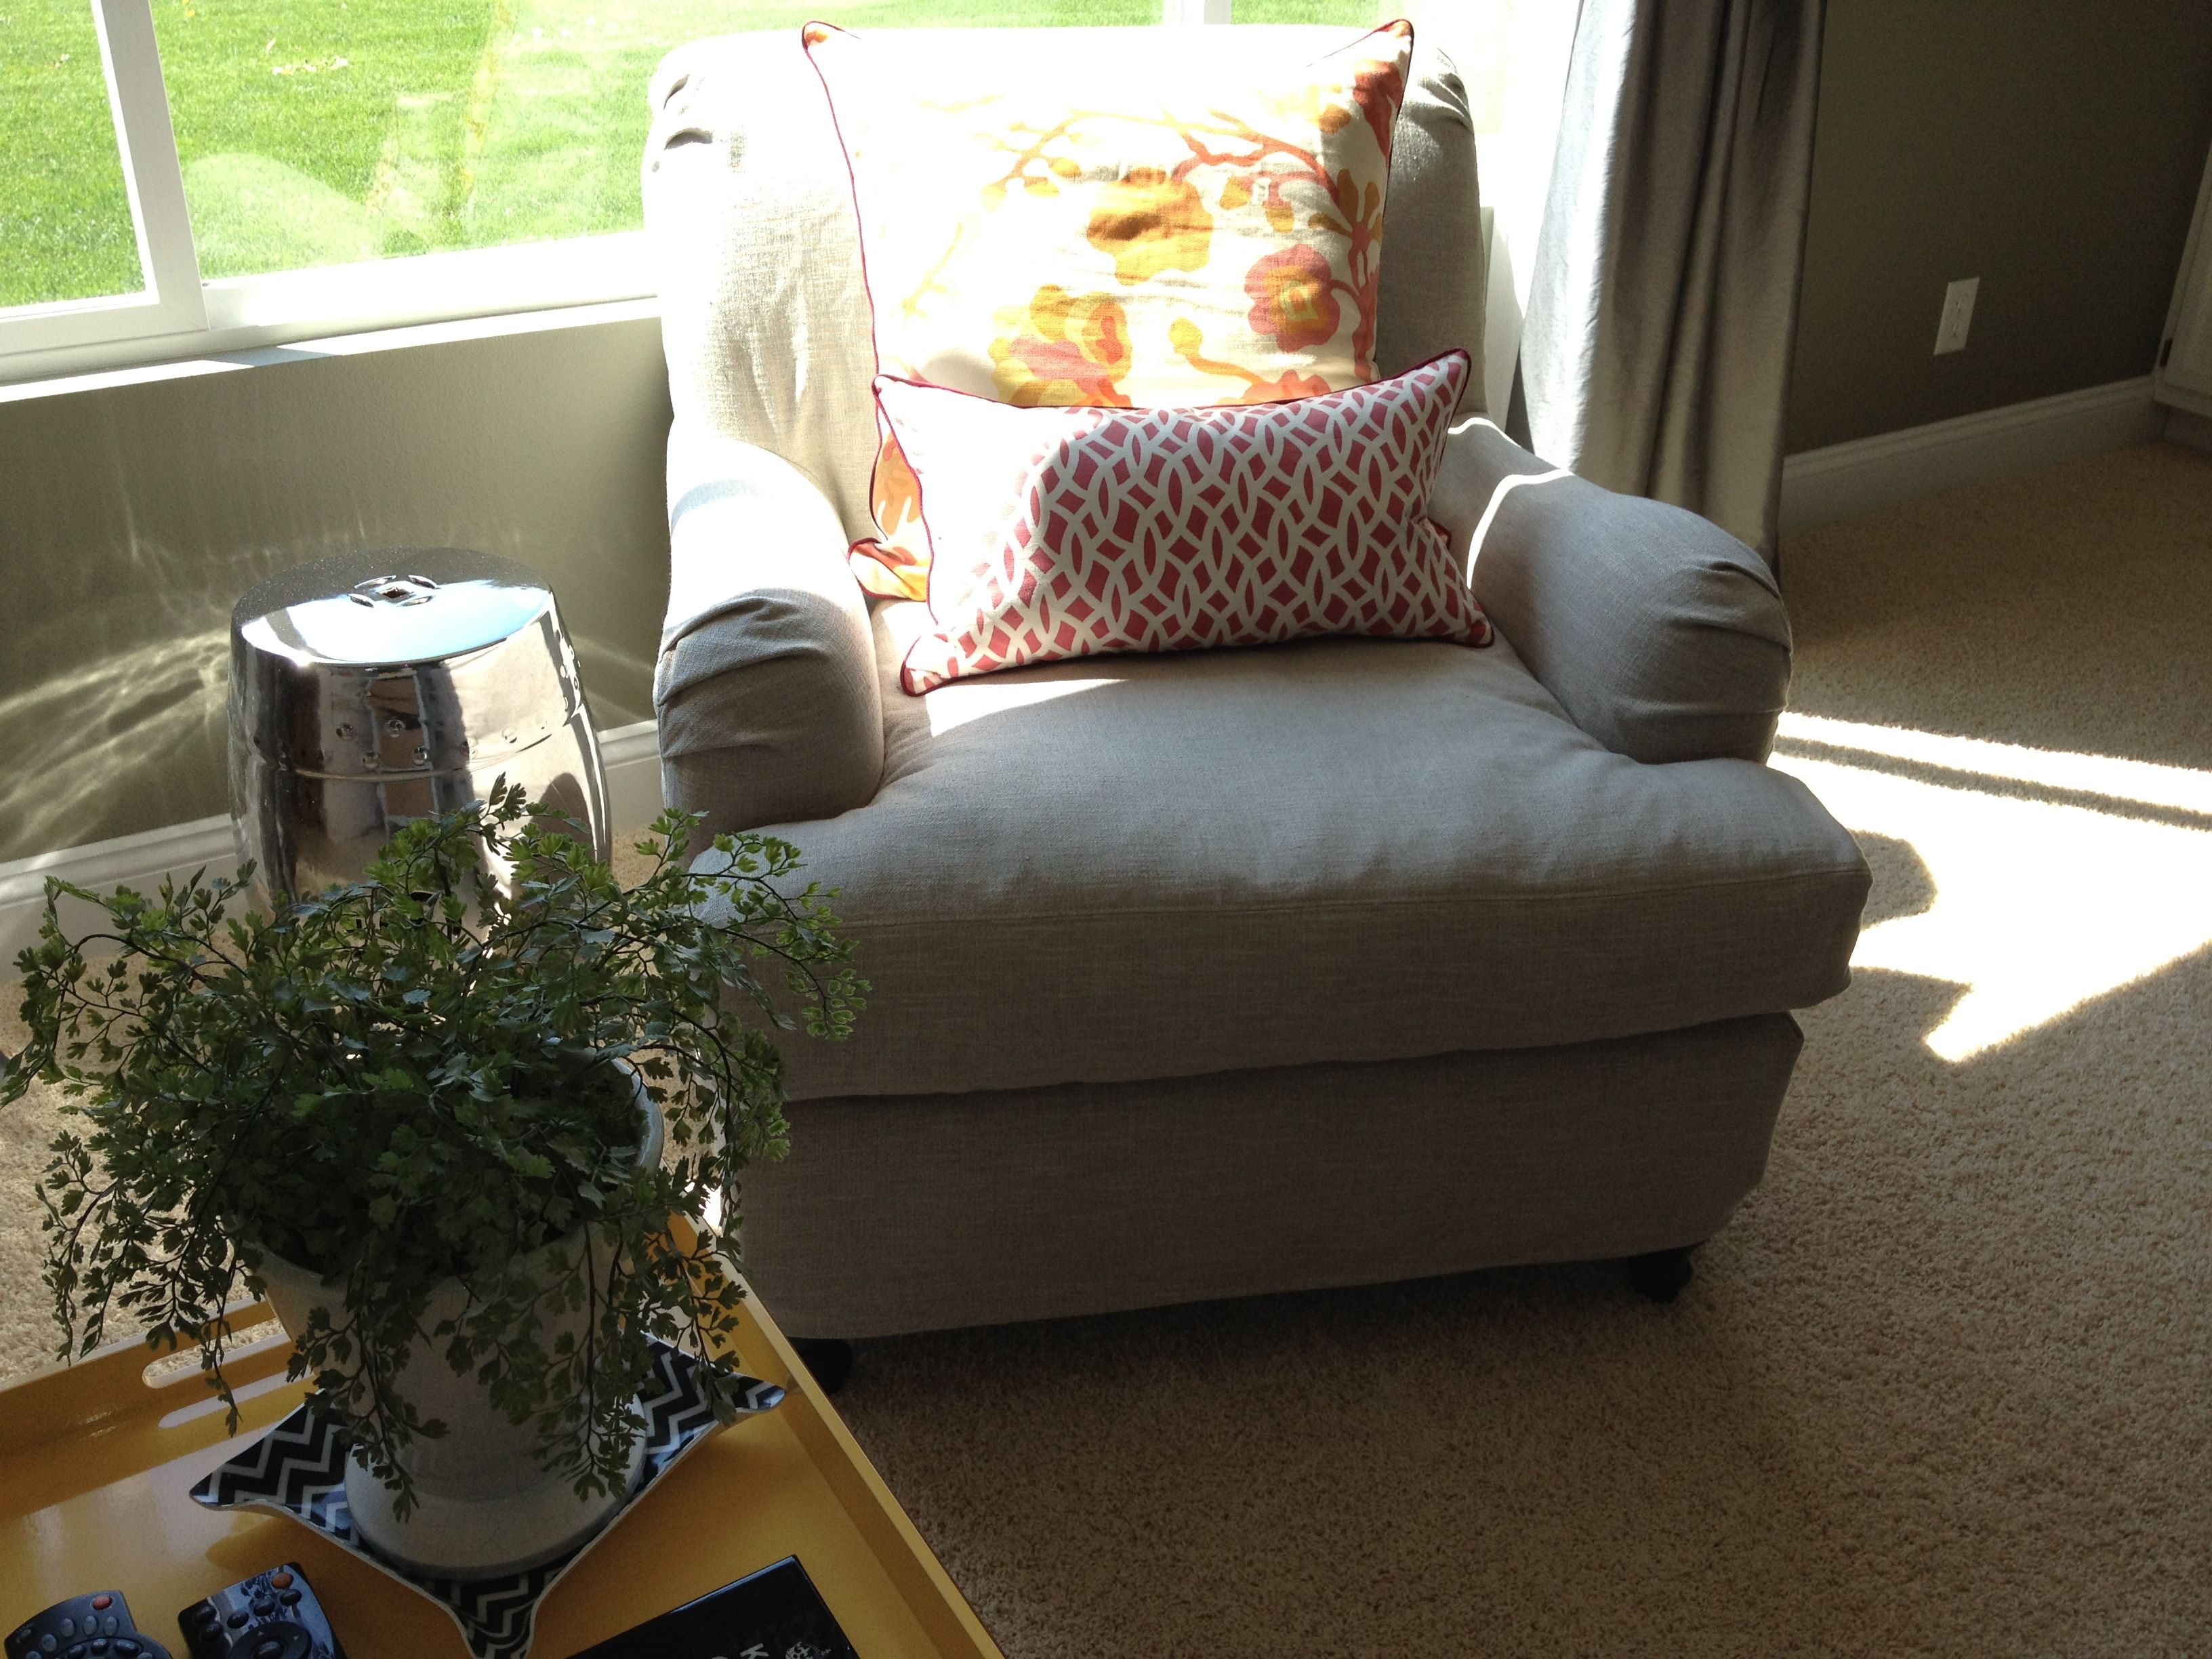 Pottery Barn Carlisle Slipcover In Washed Grainsack Flax Color Formal Living Slipcovers Living Room